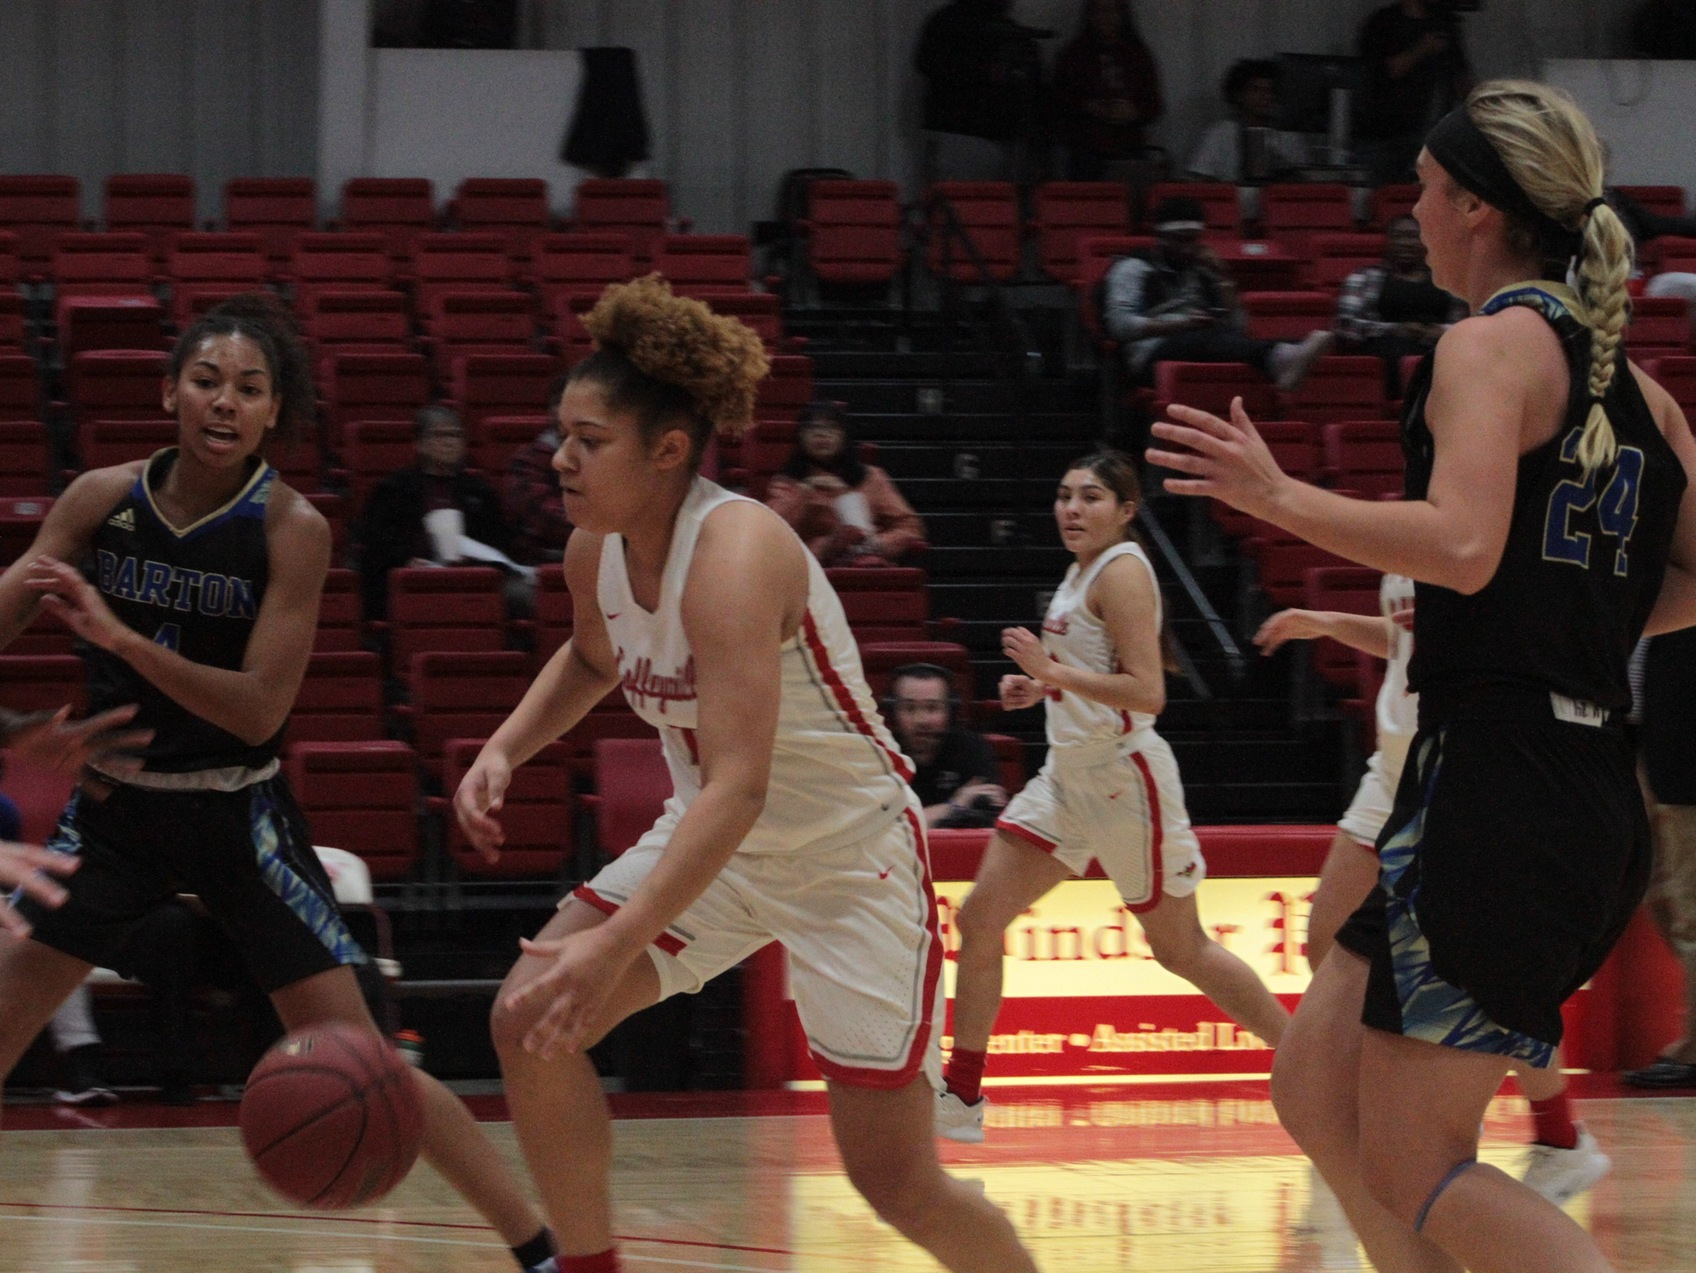 Lady Ravens Fall short in Home Thriller